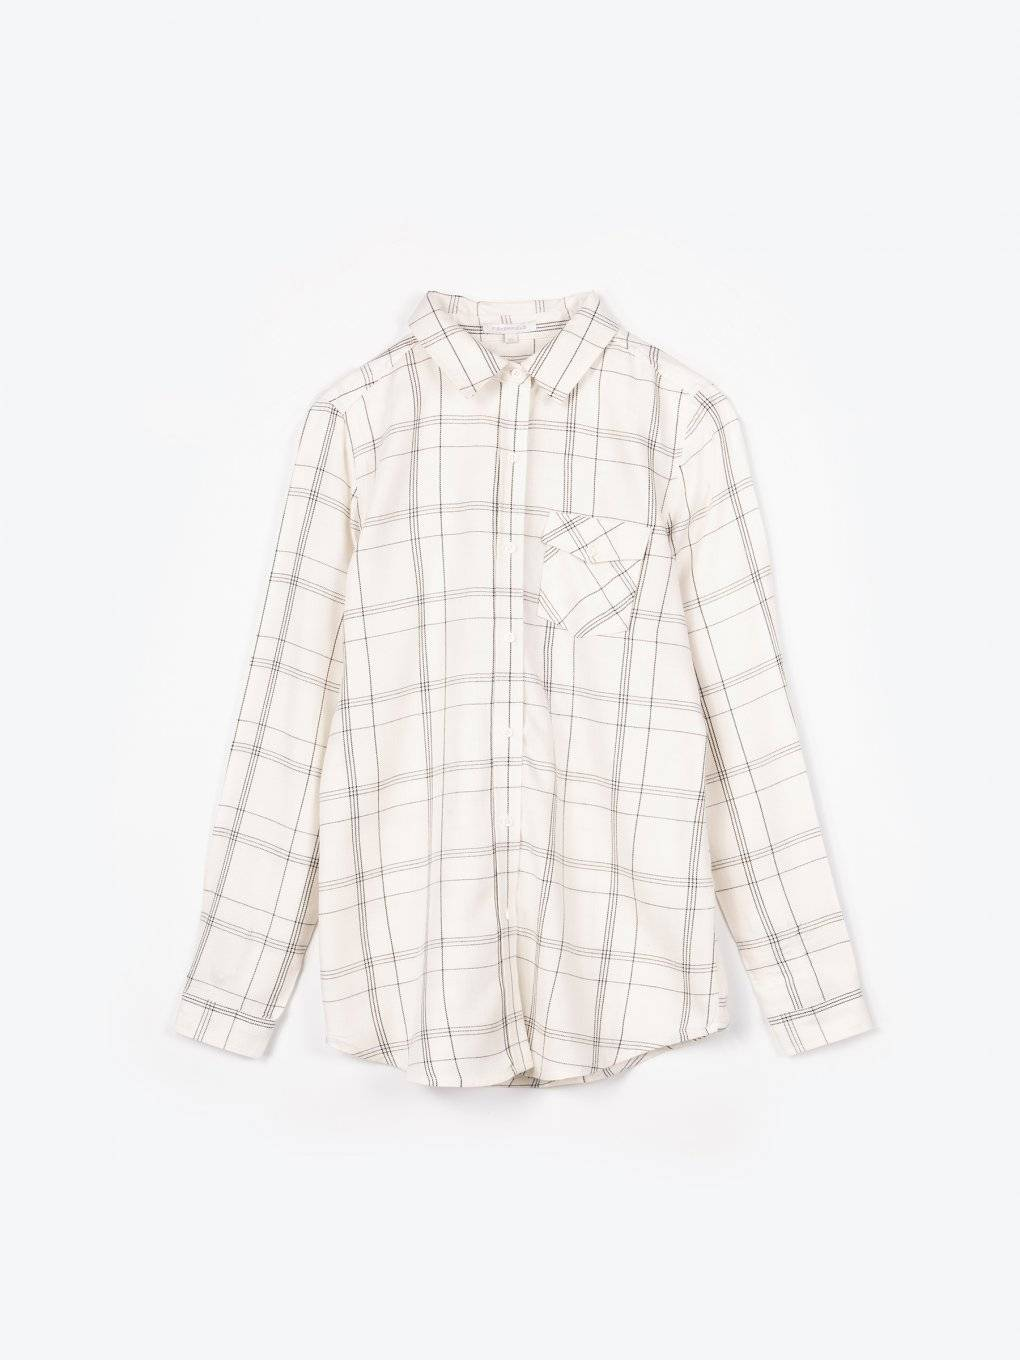 Plaid viscose shirt with message print on back